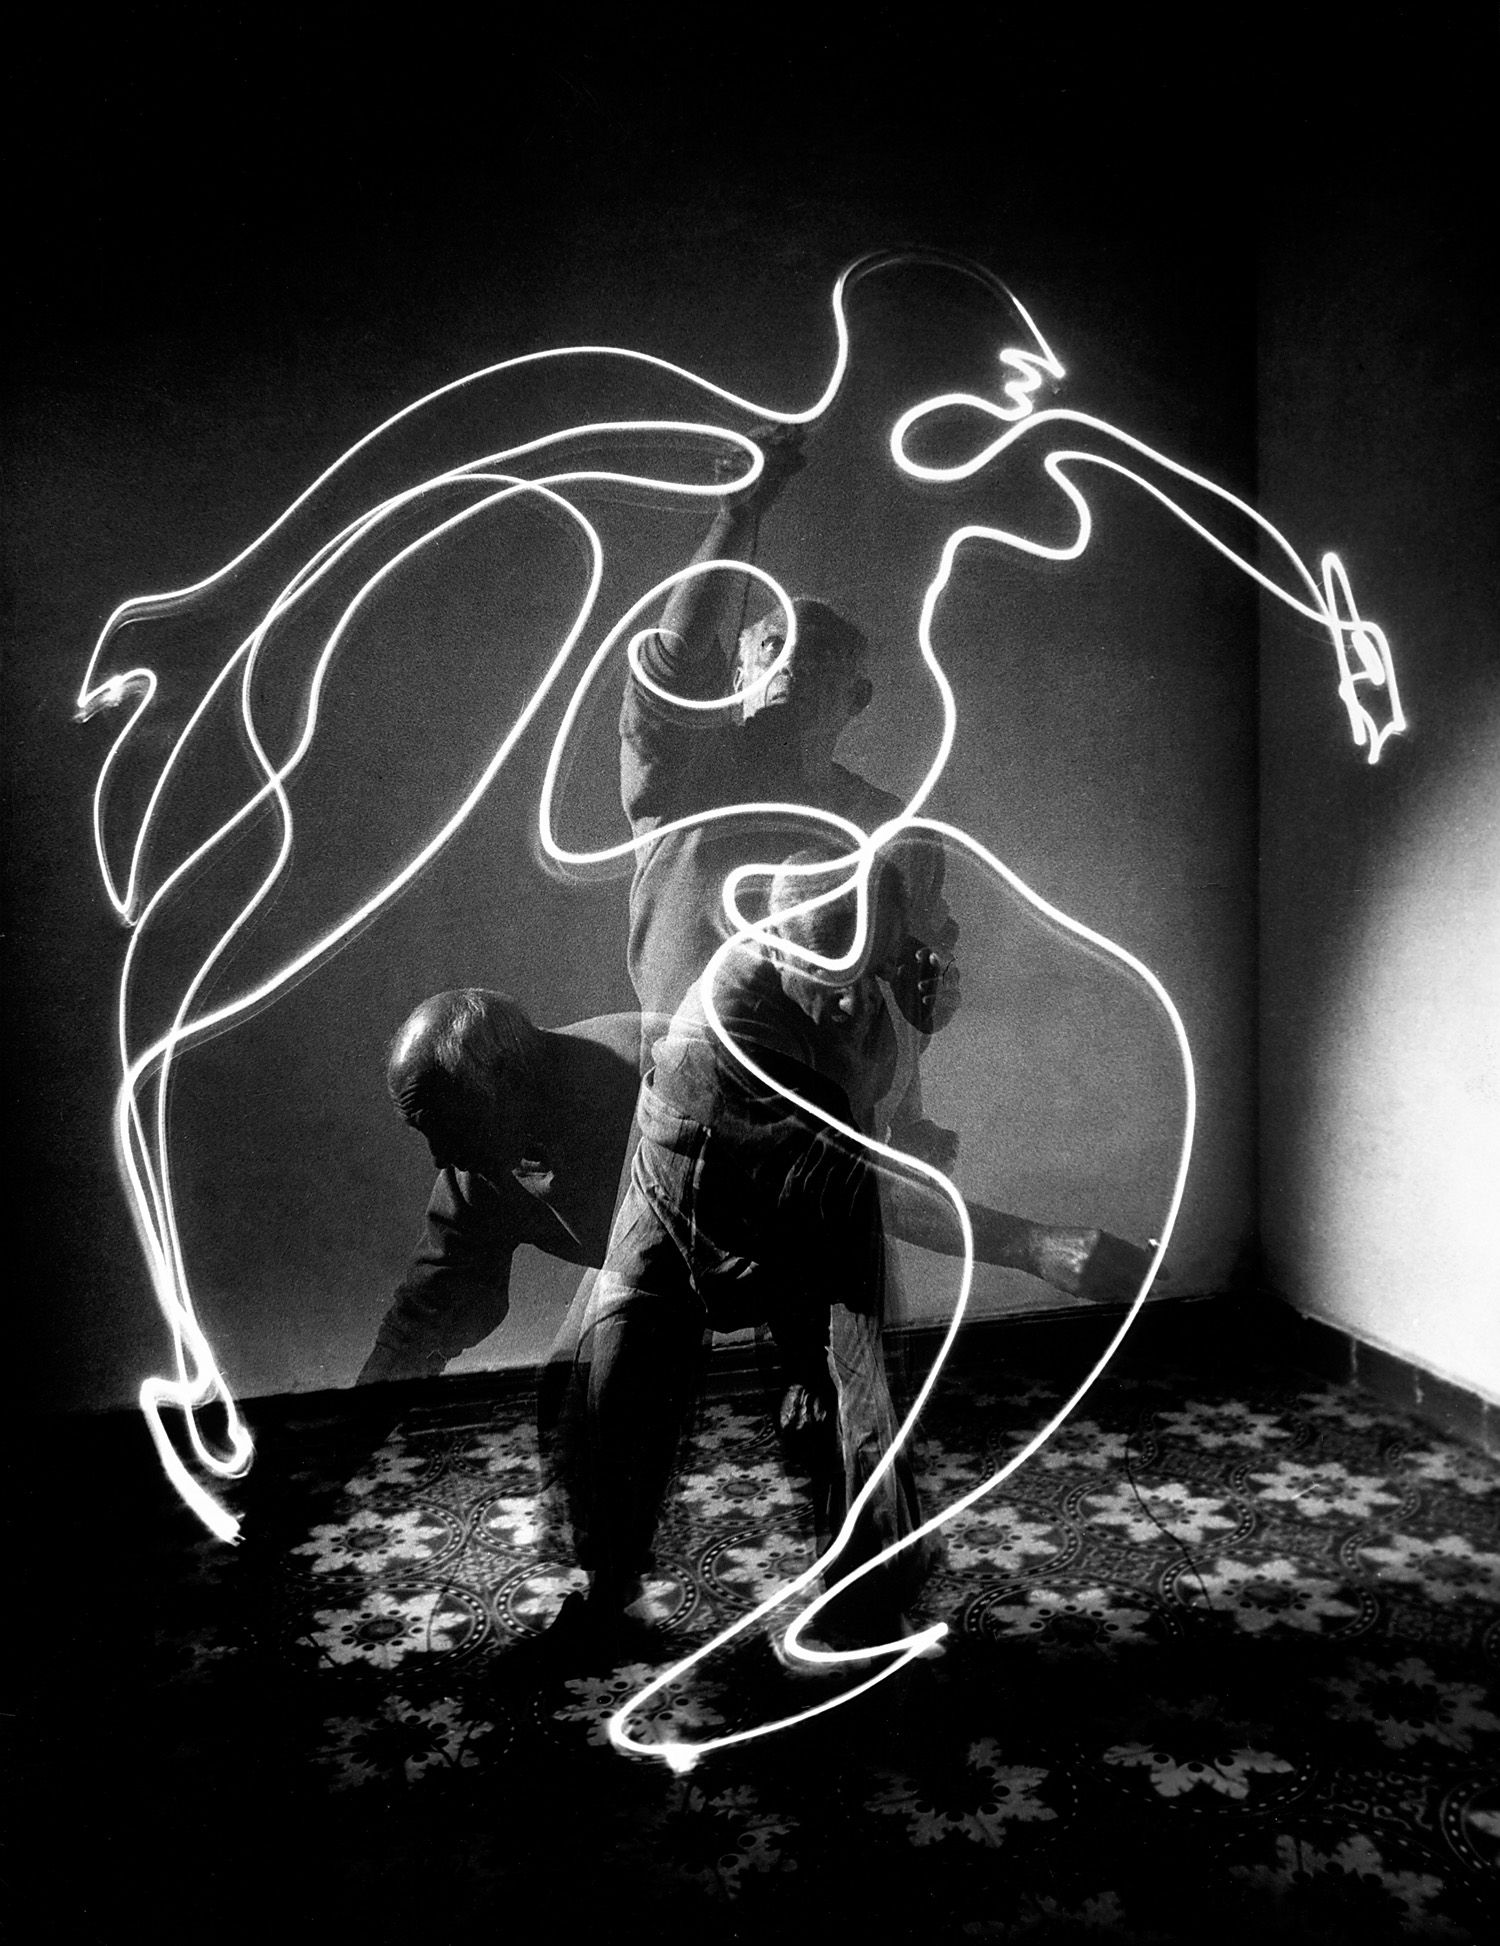 -Picasso light-drawing with a flashlight, 1949. Photograph by Gjon Mili/Time & Life Pictures/Getty.